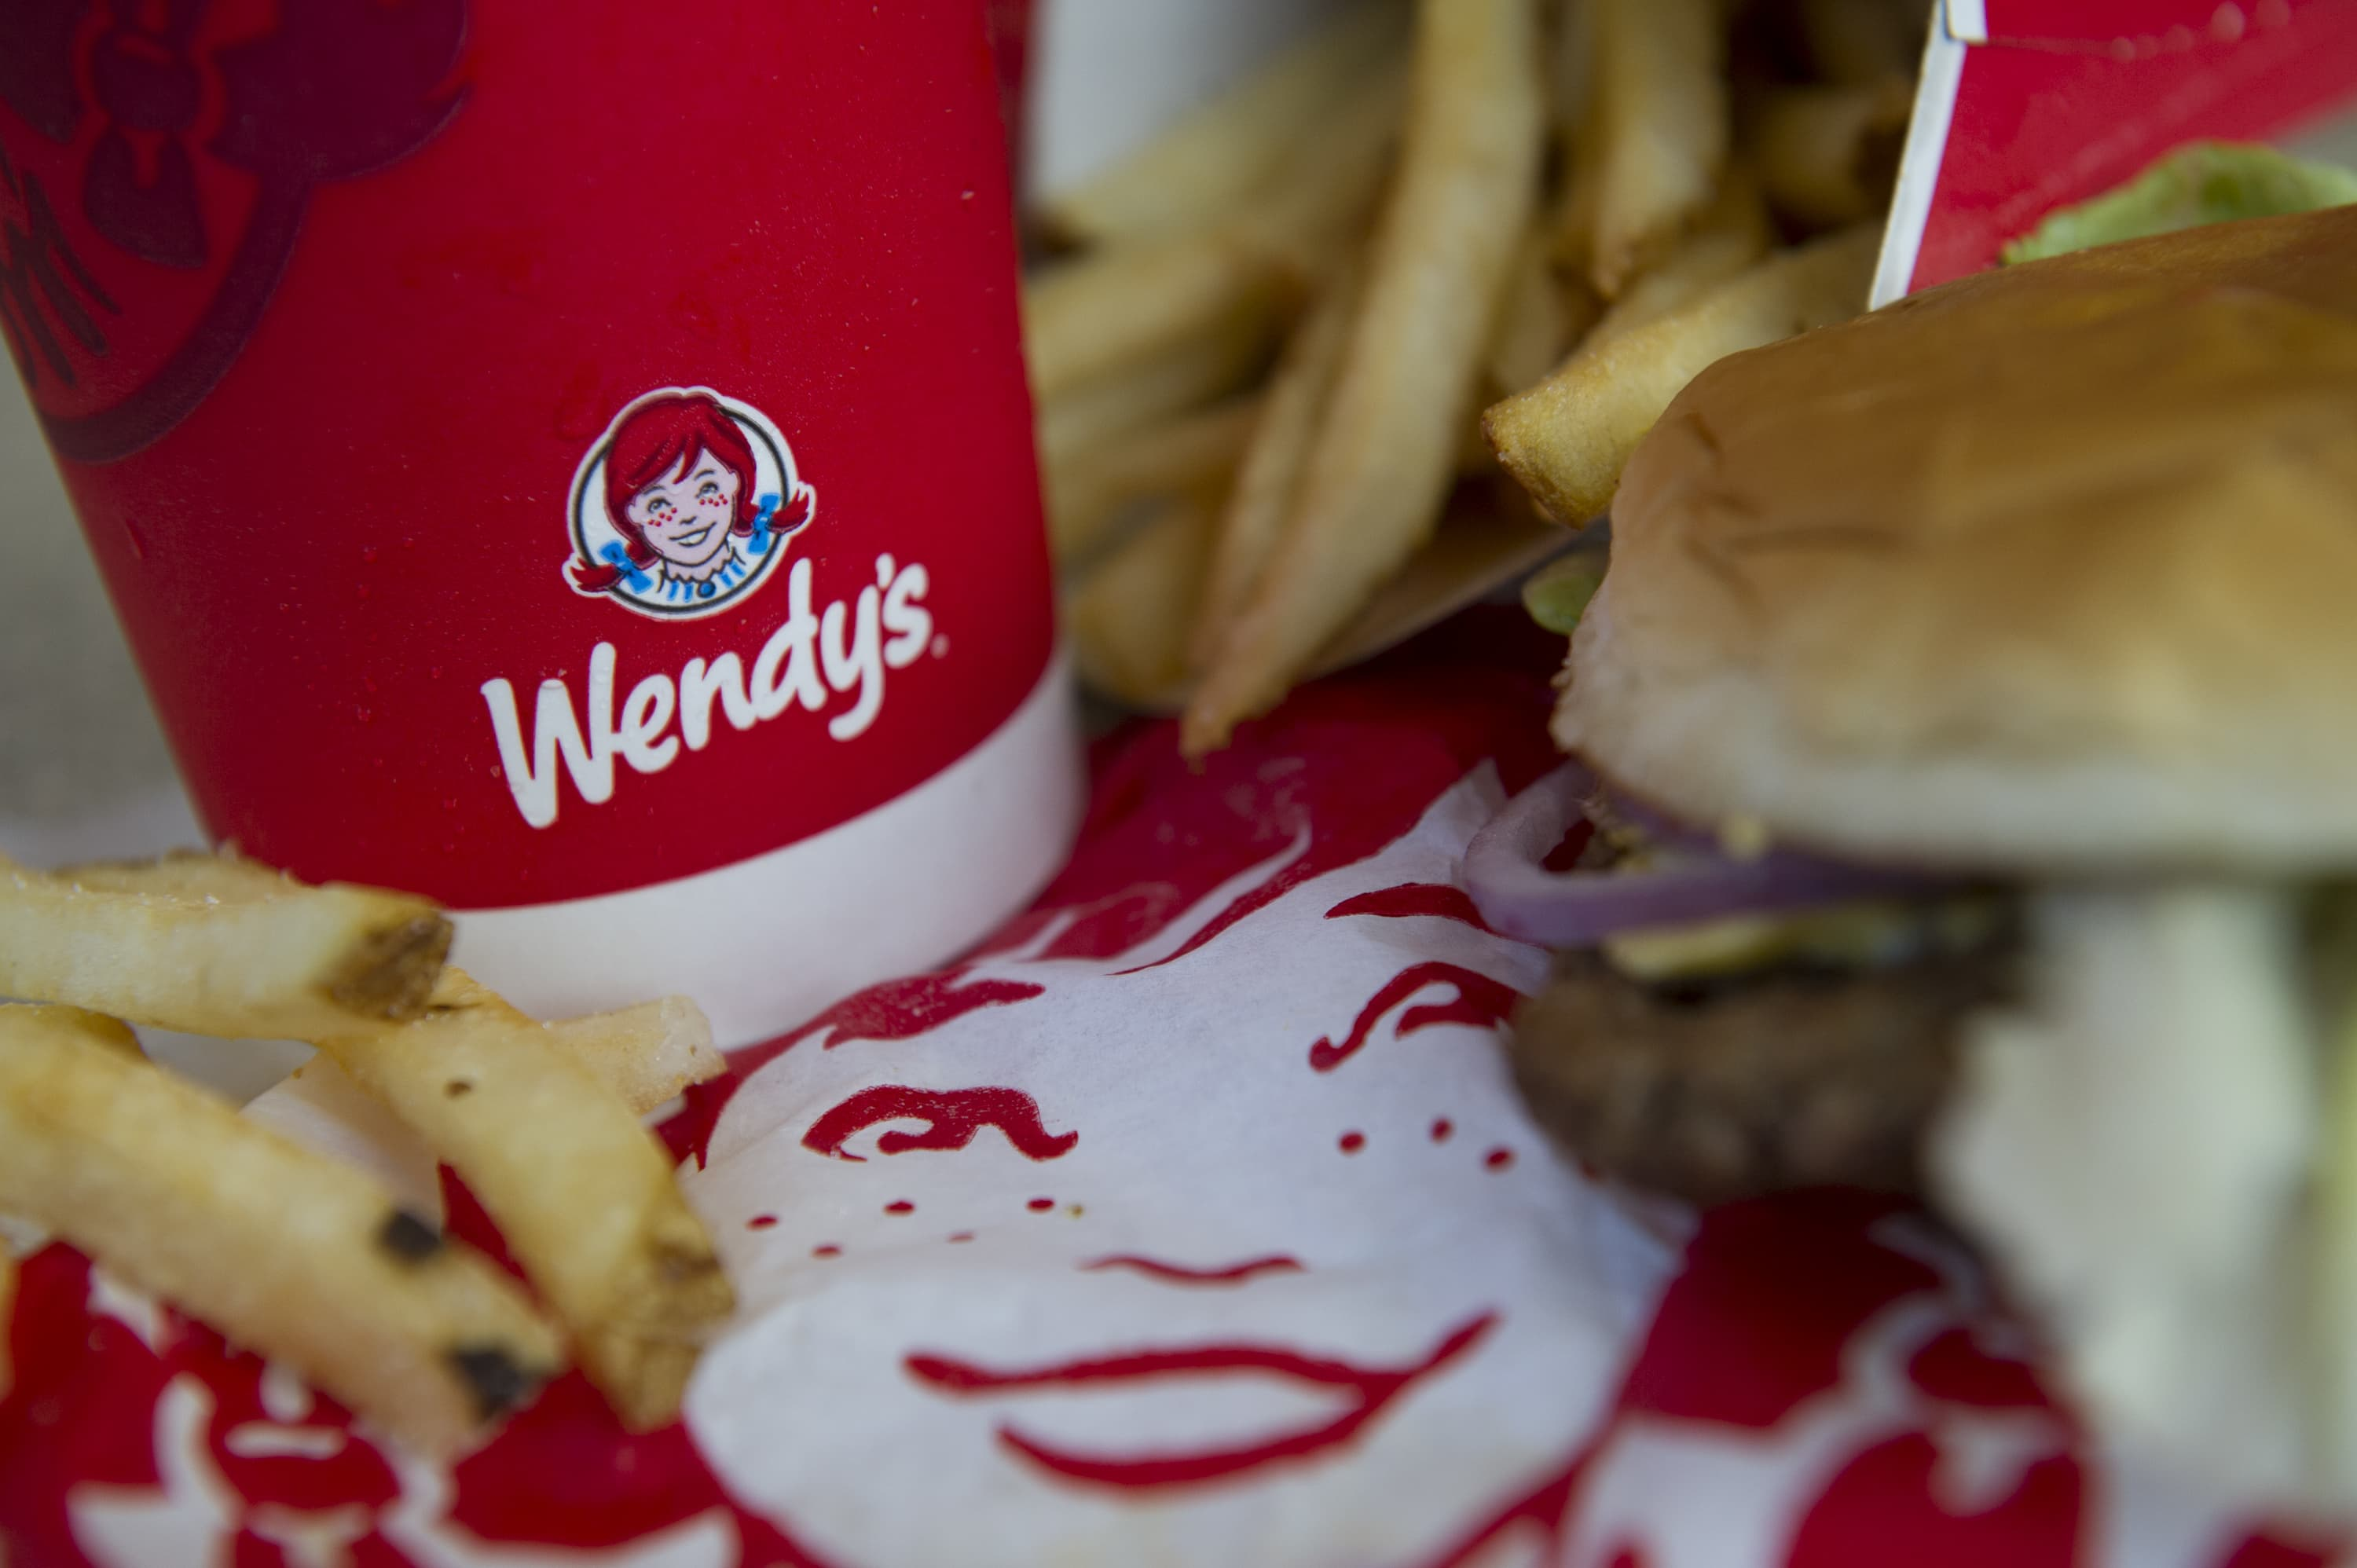 Stocks making the biggest moves midday: Wendy's, Starbucks, Maxar Technologies and more